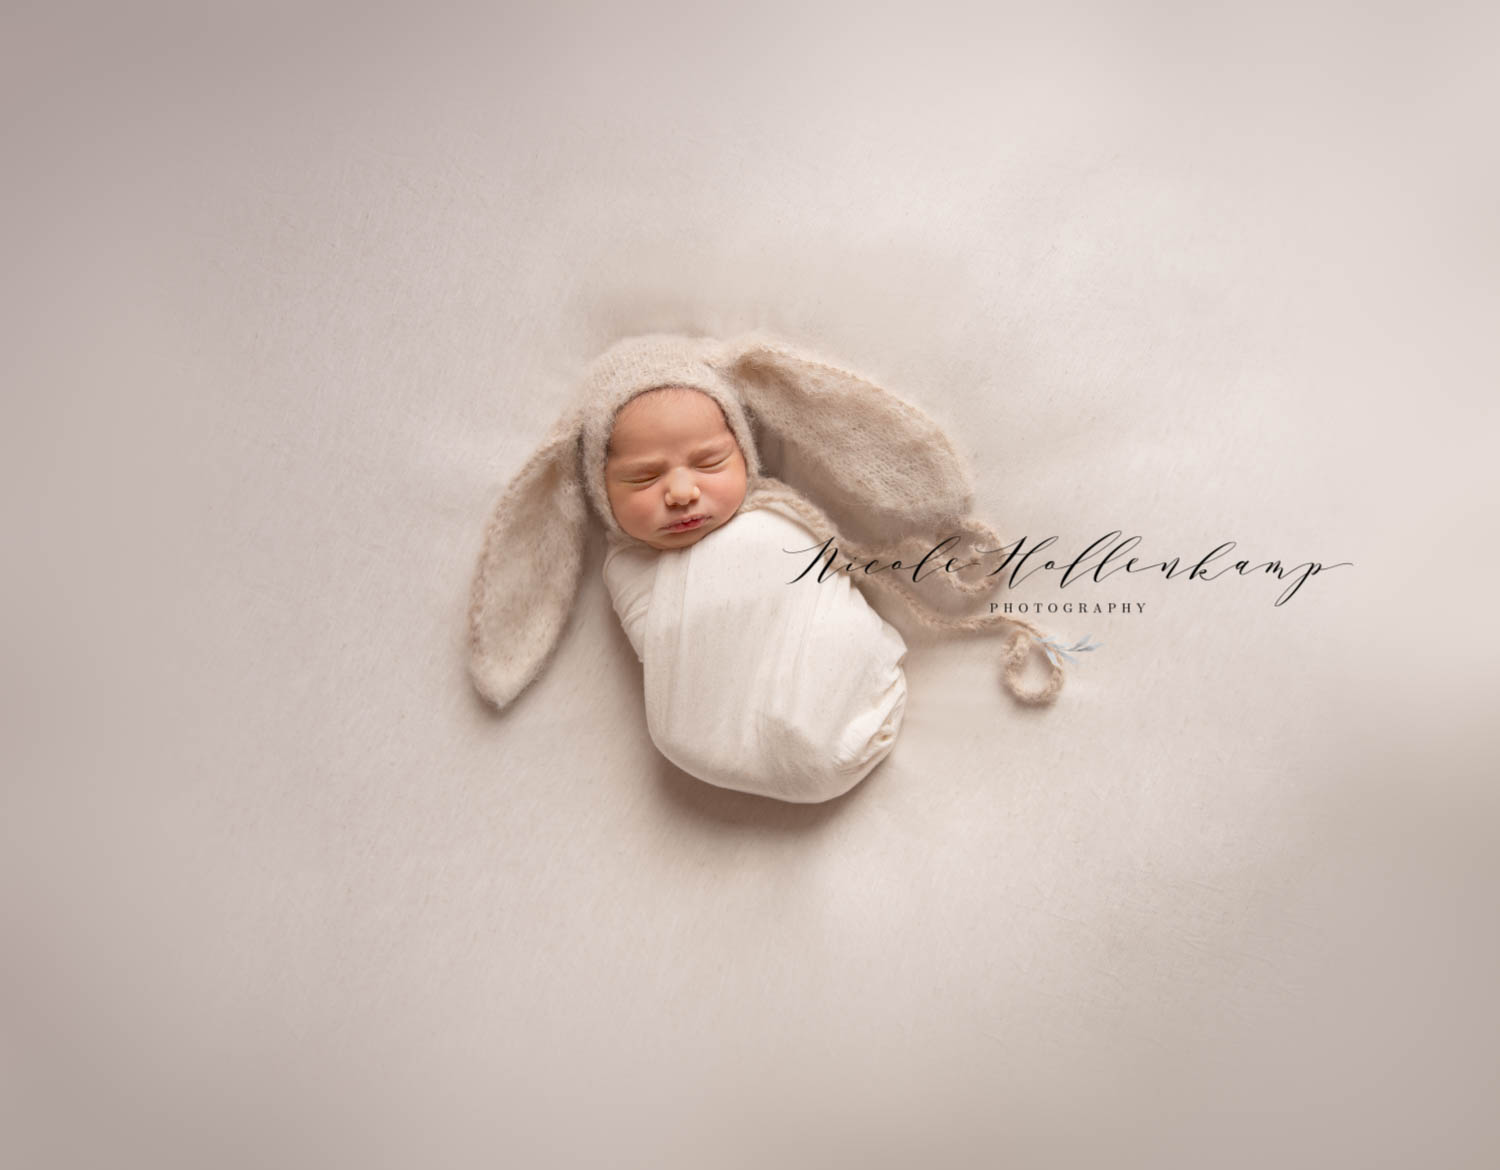 … you are so very good at (newborn Photography)! 💕 - Colleen K. {Milaca, MN}